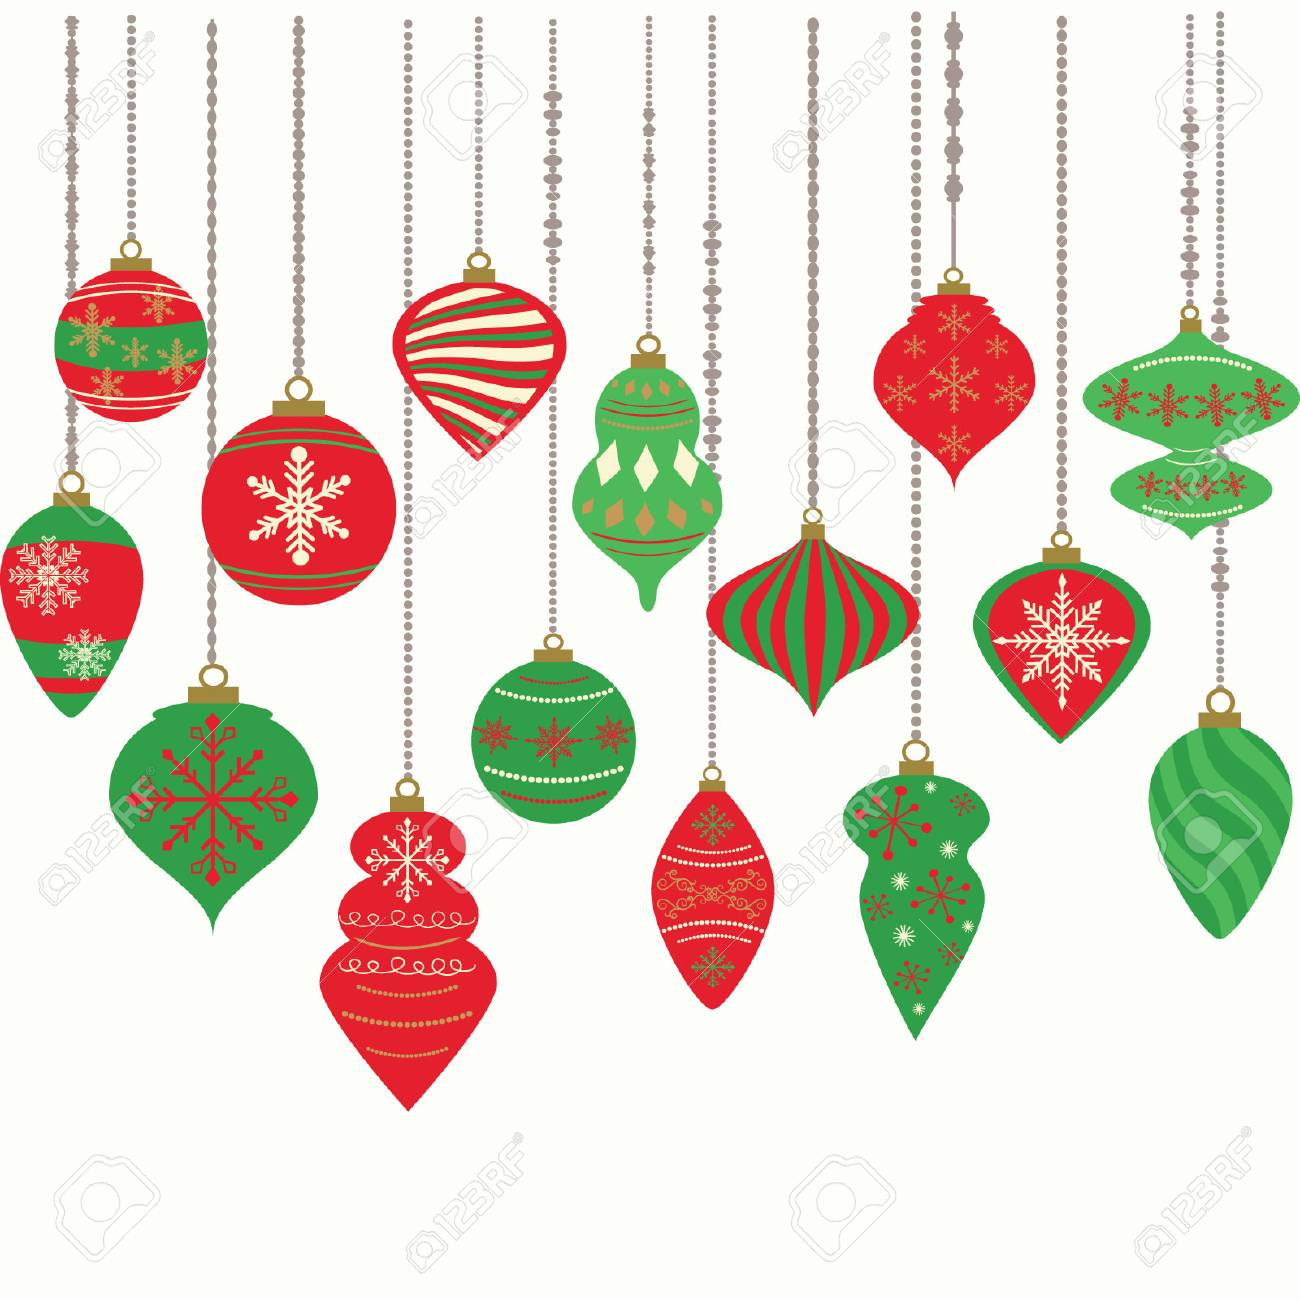 Hanging Christmas Decorations.Hanging Christmas Ornaments Isolated On White